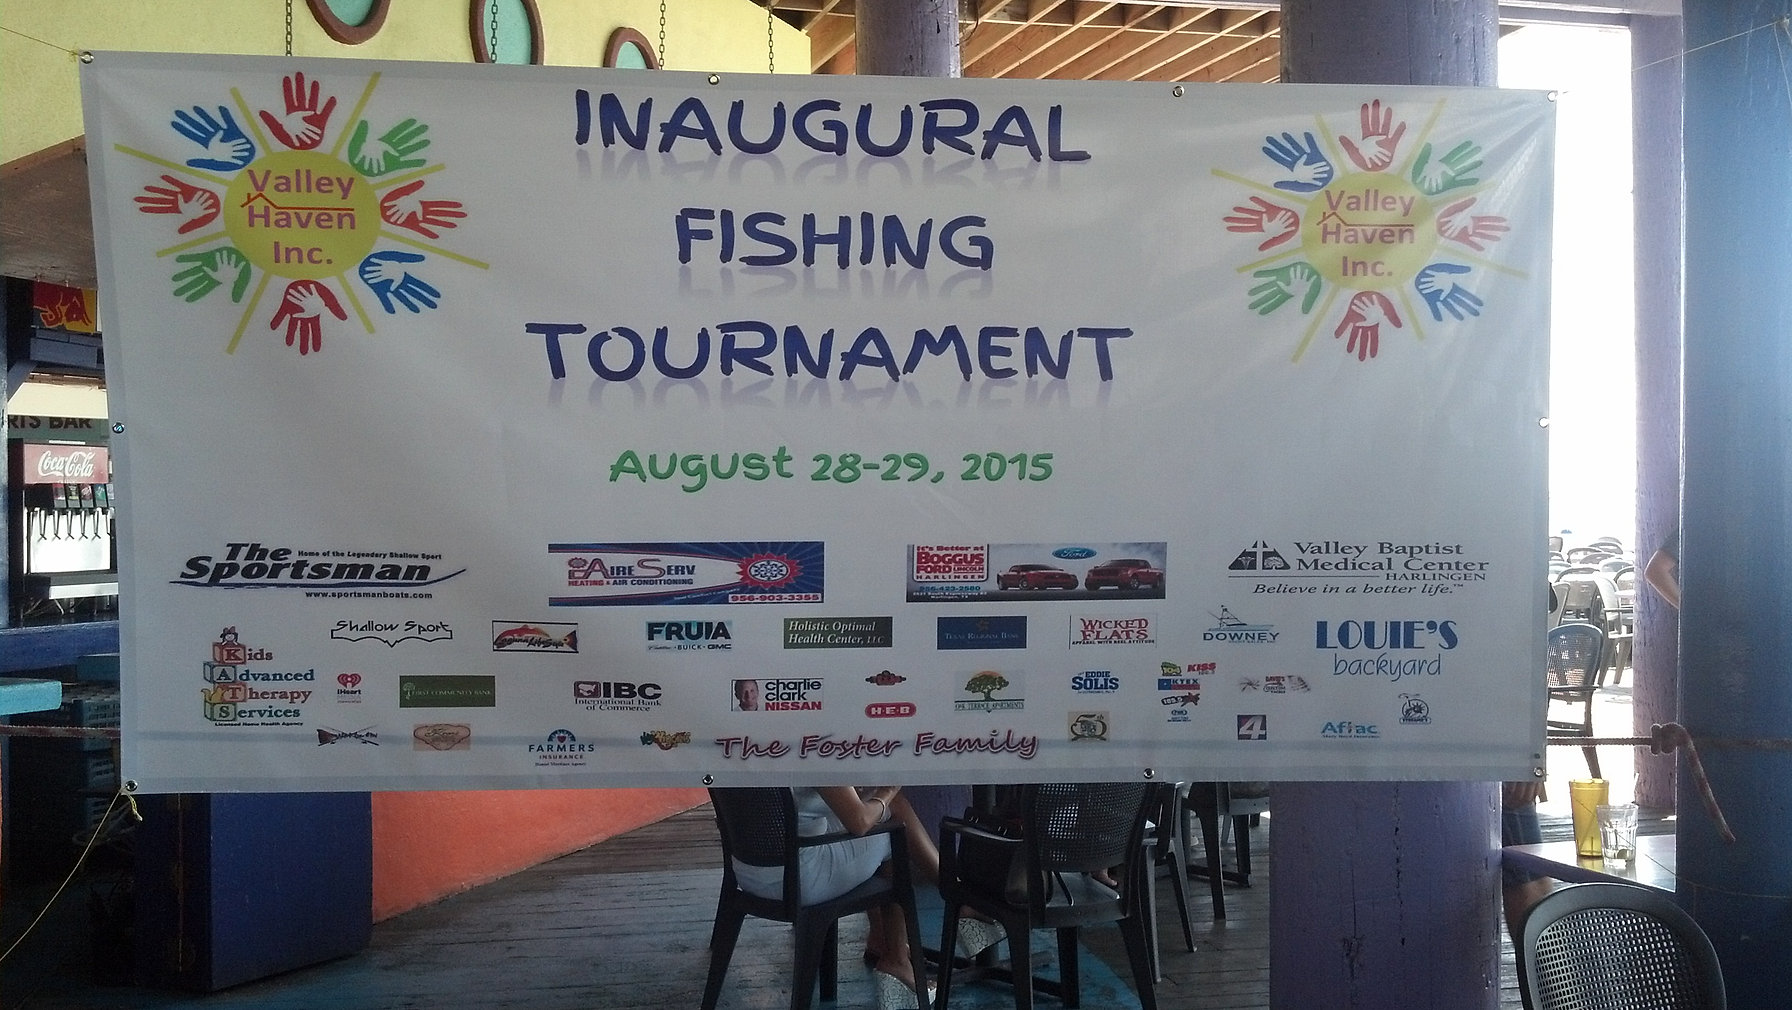 valley haven fishing tournament